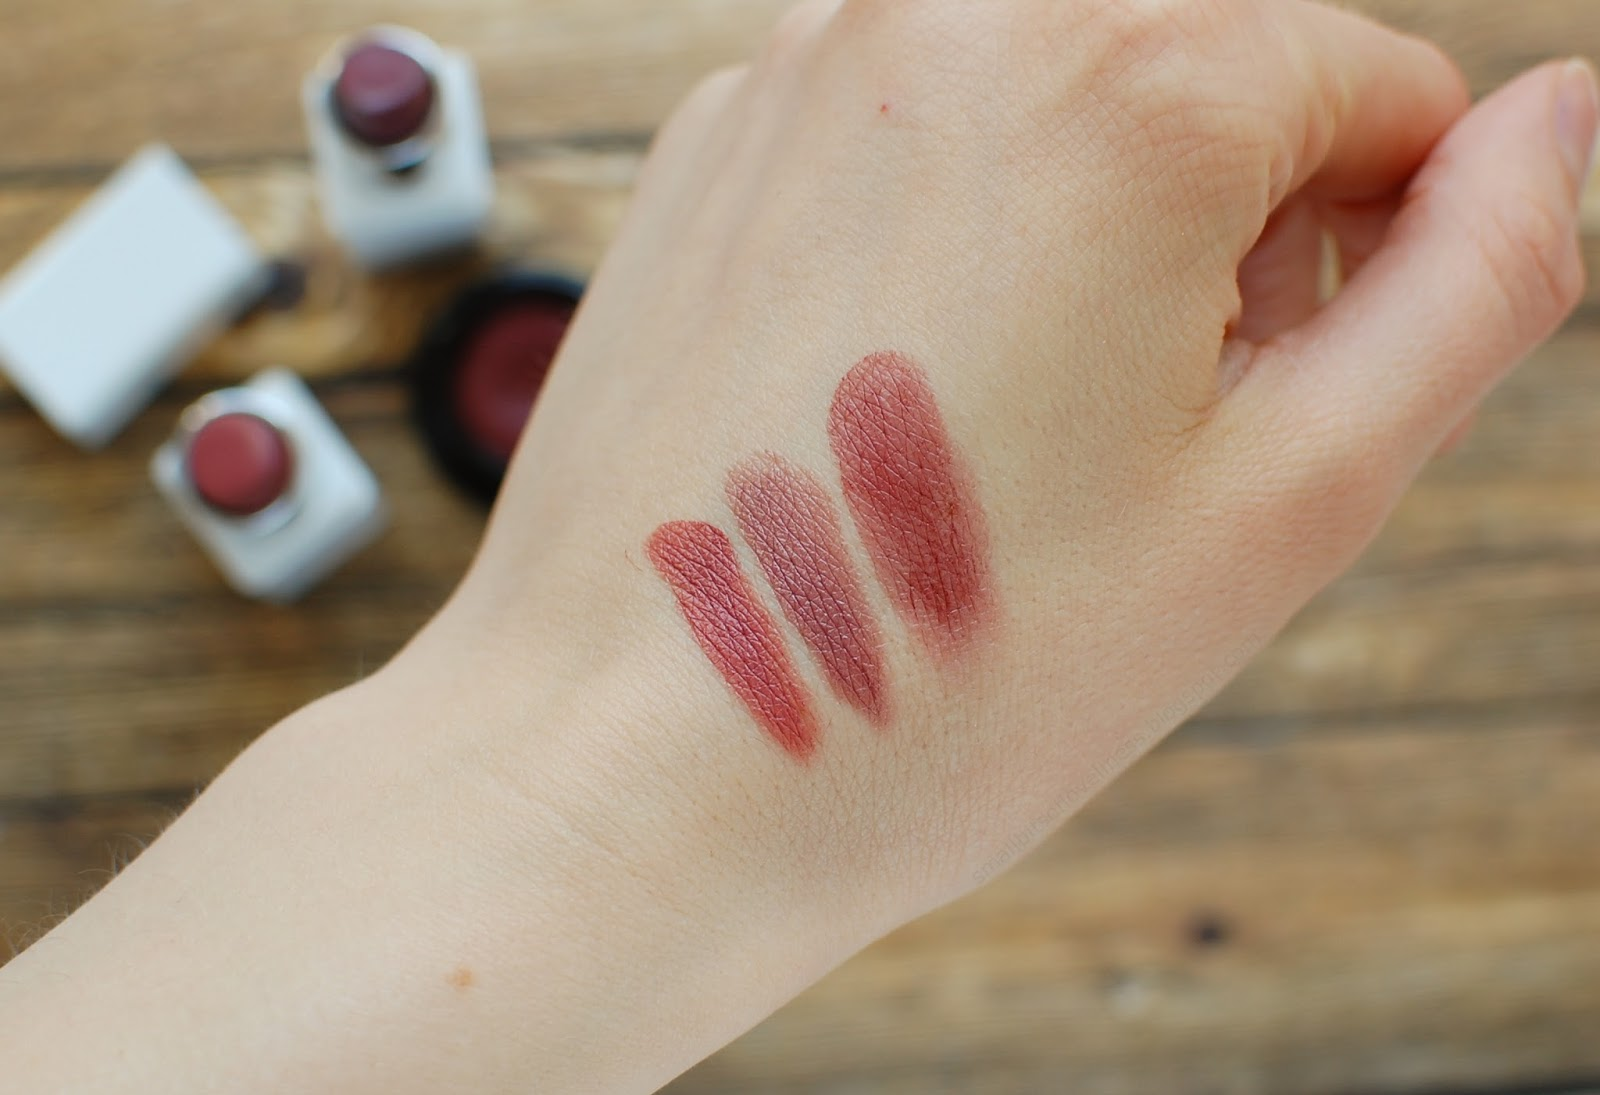 Nudus Lipstick 27 Kisses and Just Like Jade, Gressa Skin Regal Lip Boost swatch